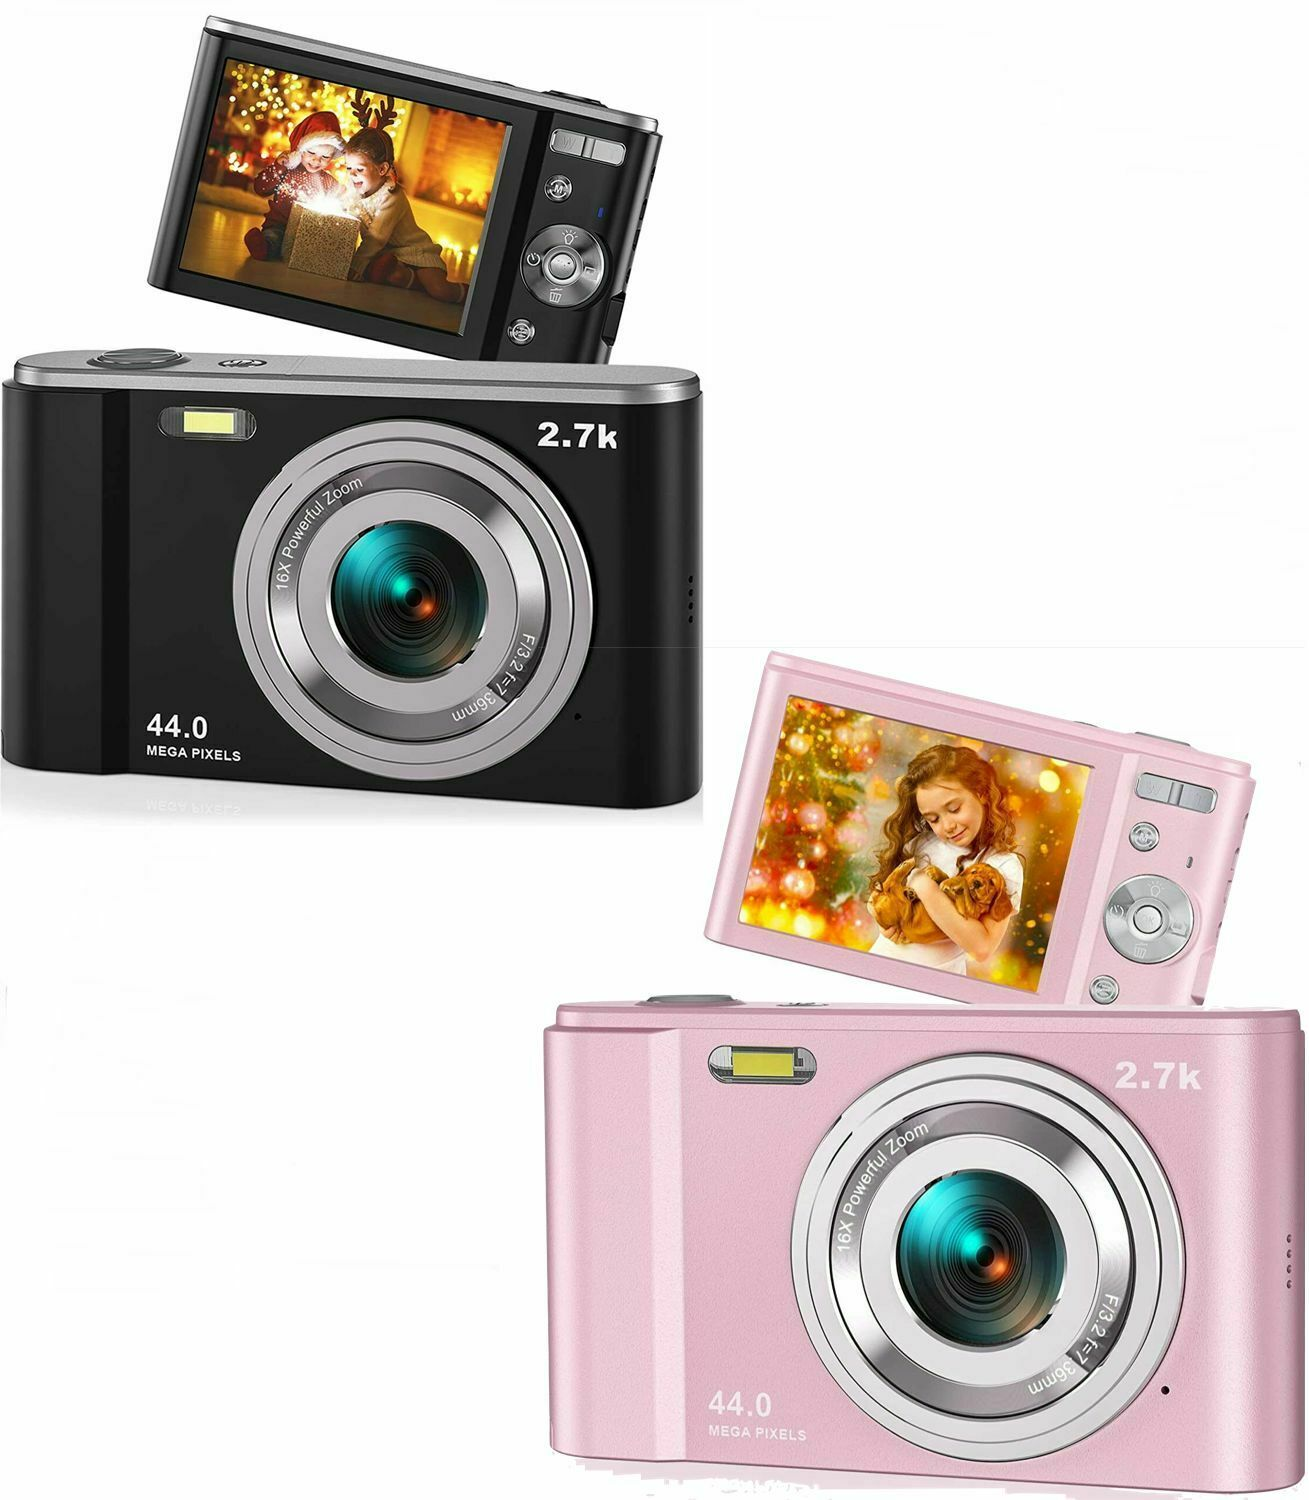 44MP Small Digital Camera 2.7K 2.88inch IPS Screen 16X Zoom Face Detection Vlogging Camera for Photography Beginners Kids